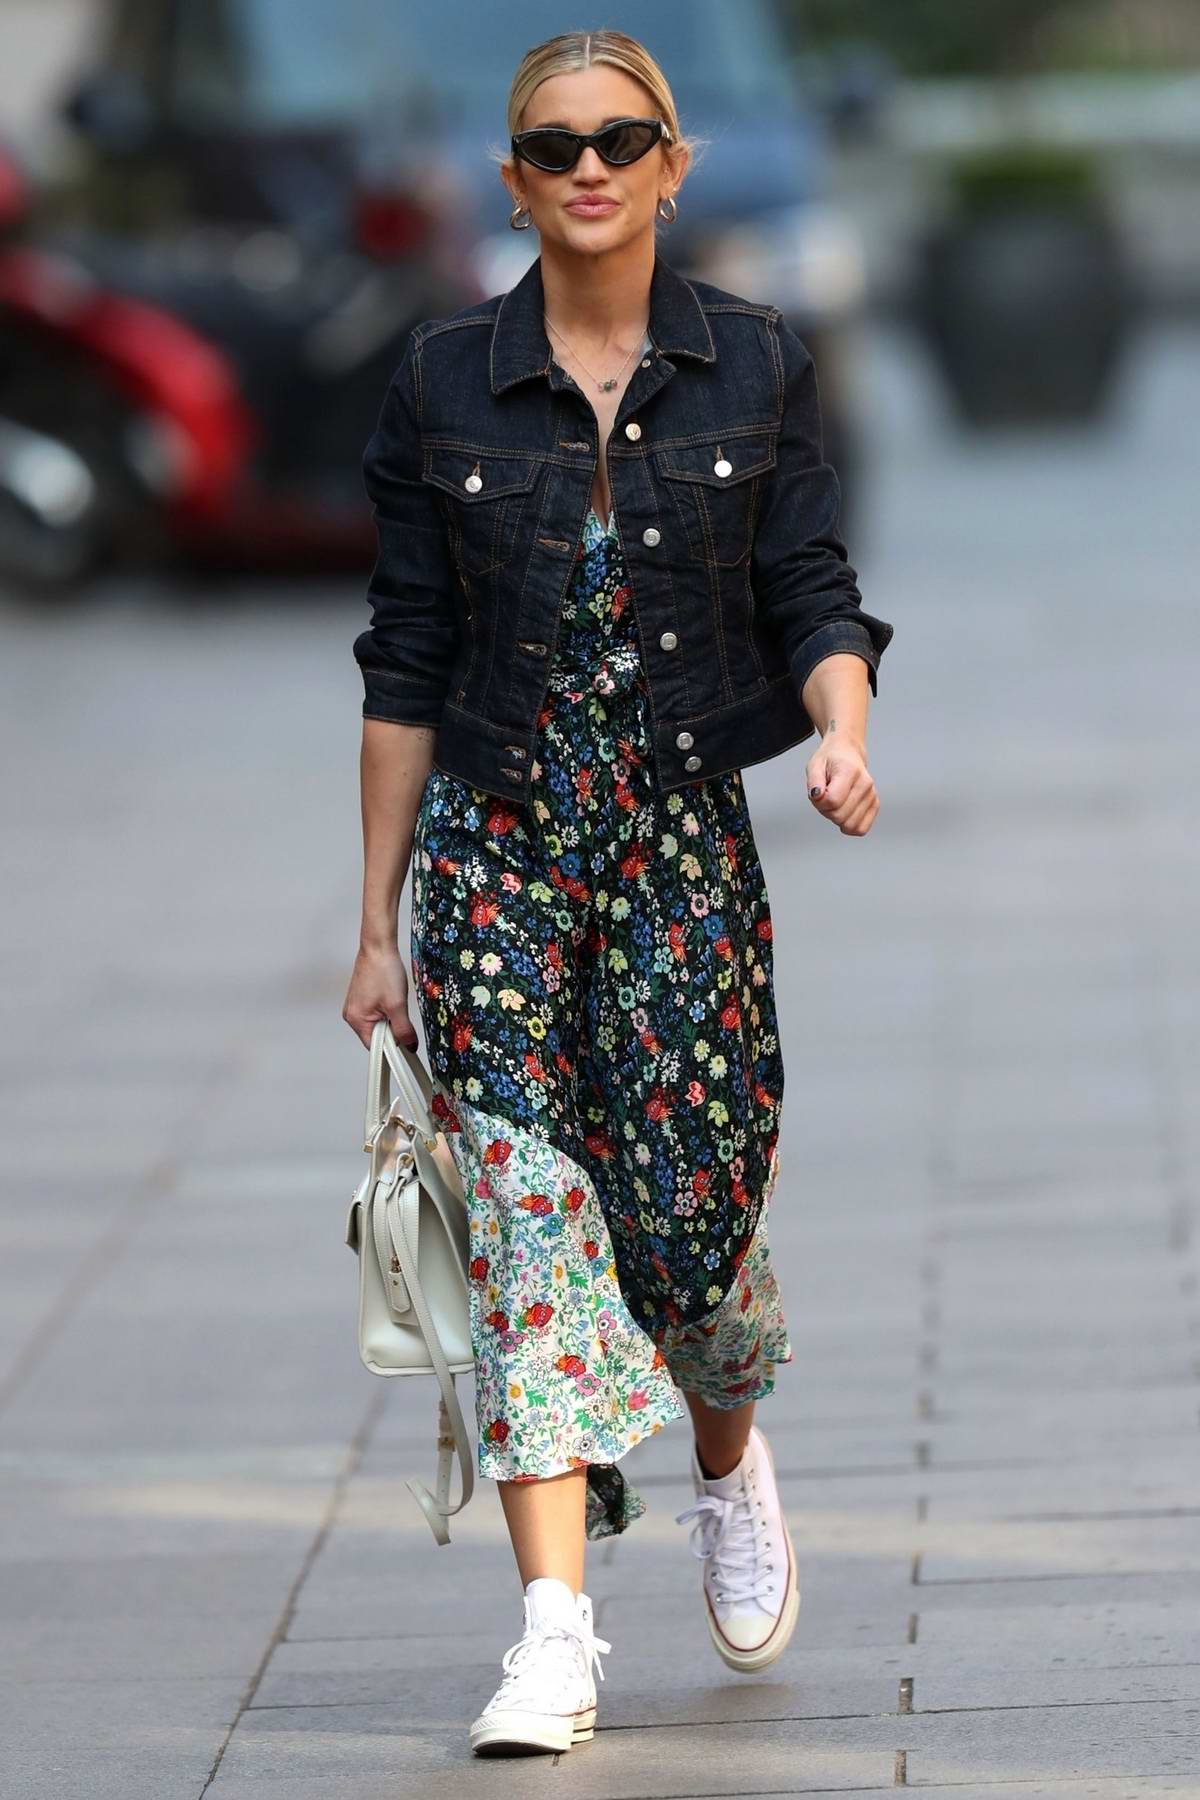 Ashley Roberts looks lovely in a summer dress and a denim jacket as she leaves Global Radio in London, UK